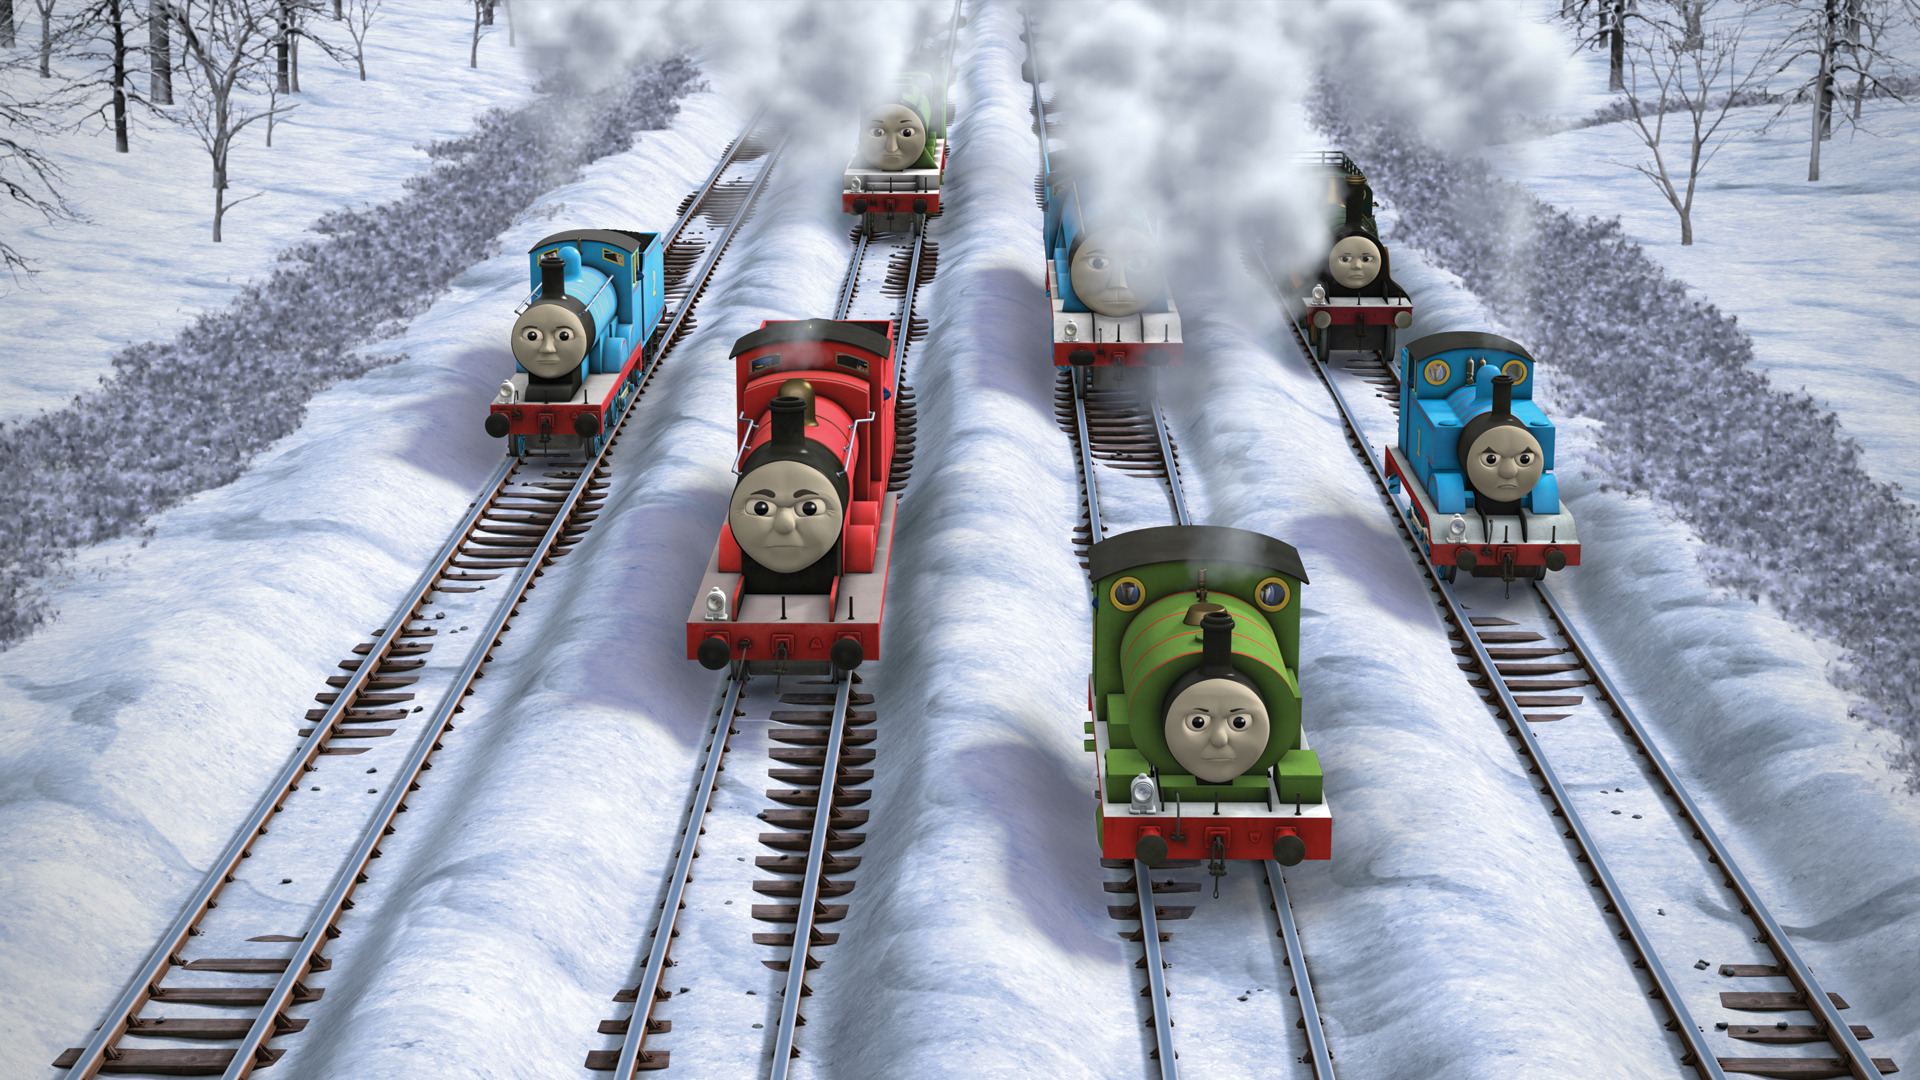 The Missing Christmas Decorations  sc 1 st  Thomas the Tank Engine Wikia - Fandom & The Missing Christmas Decorations | Thomas the Tank Engine Wikia ...